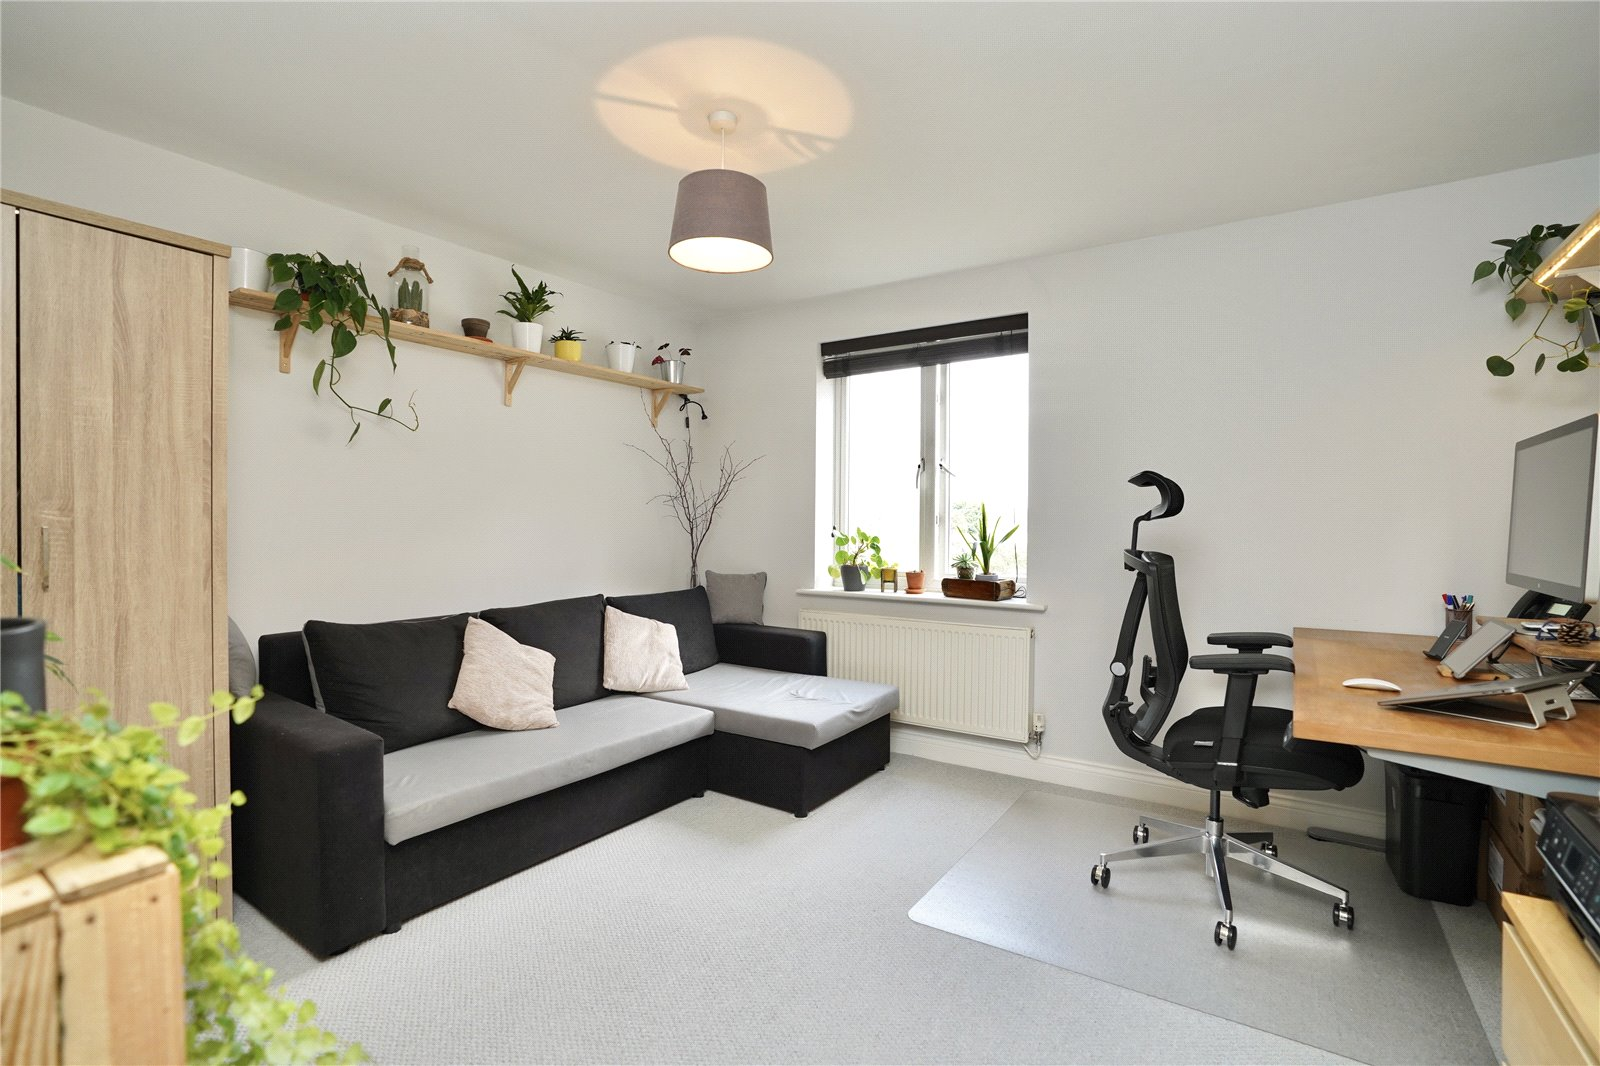 2 bed apartment for sale in St. Ives, PE27 5QL  - Property Image 9